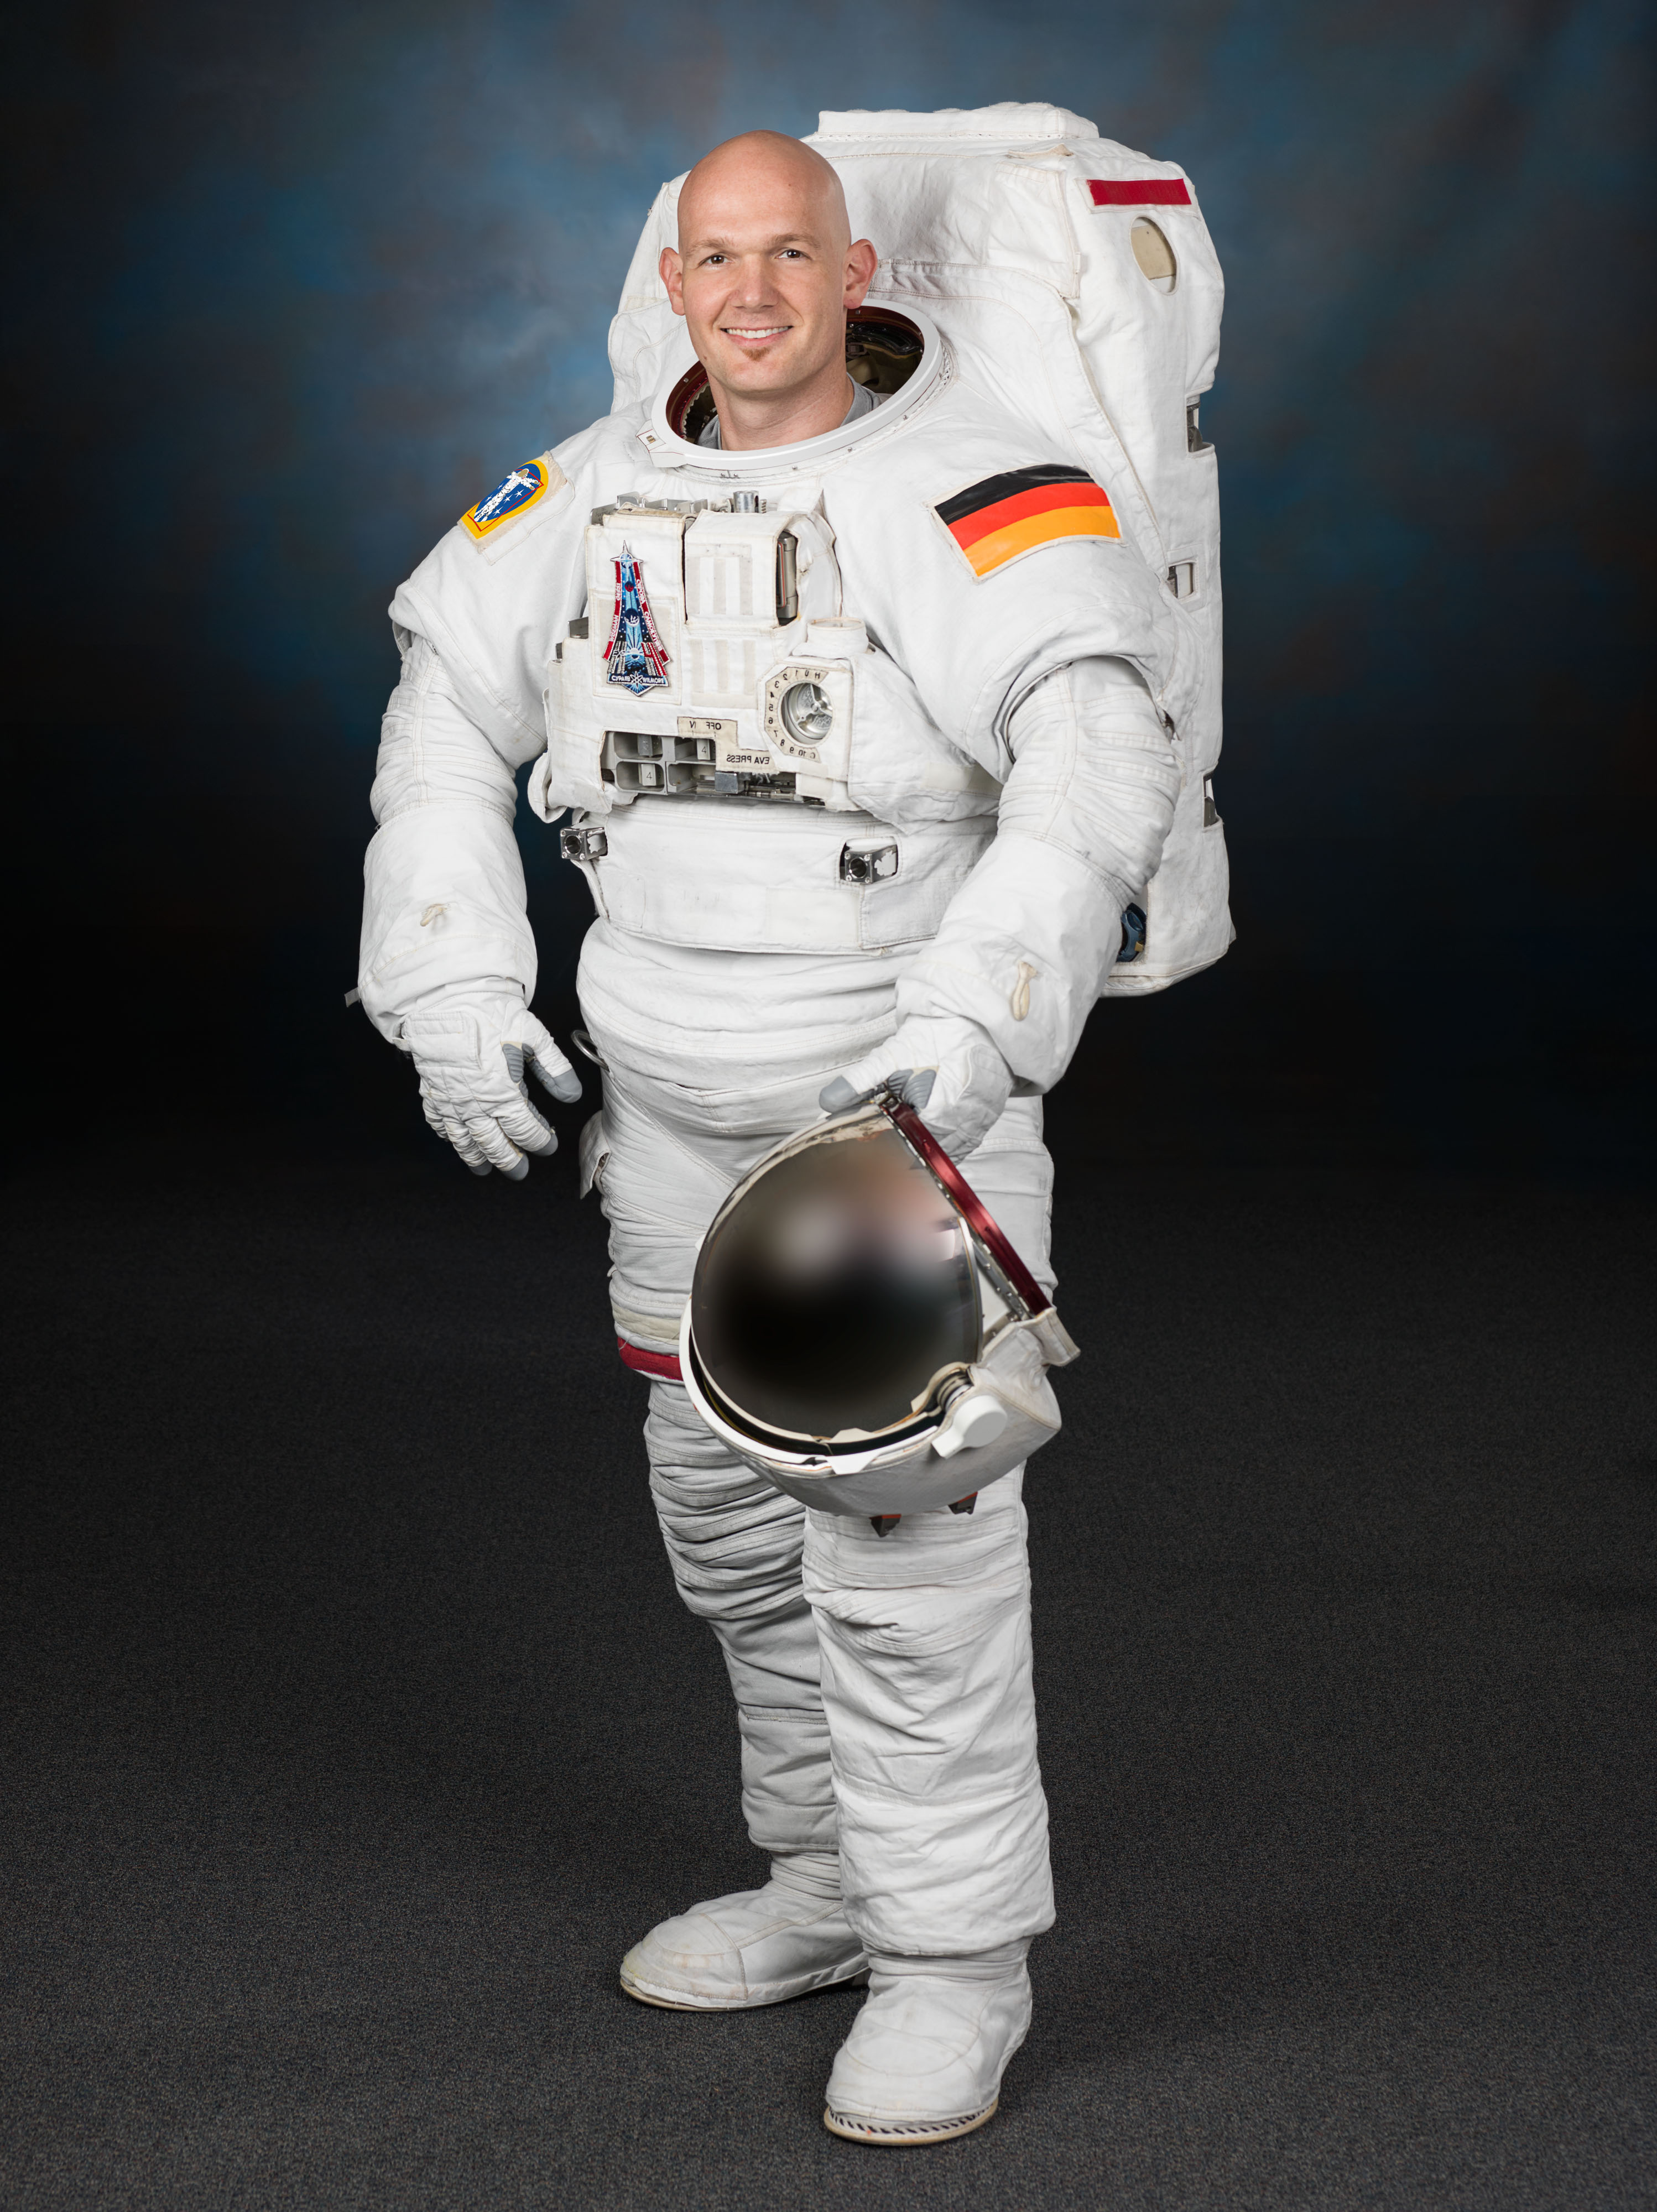 first esa astronaut in space - photo #5